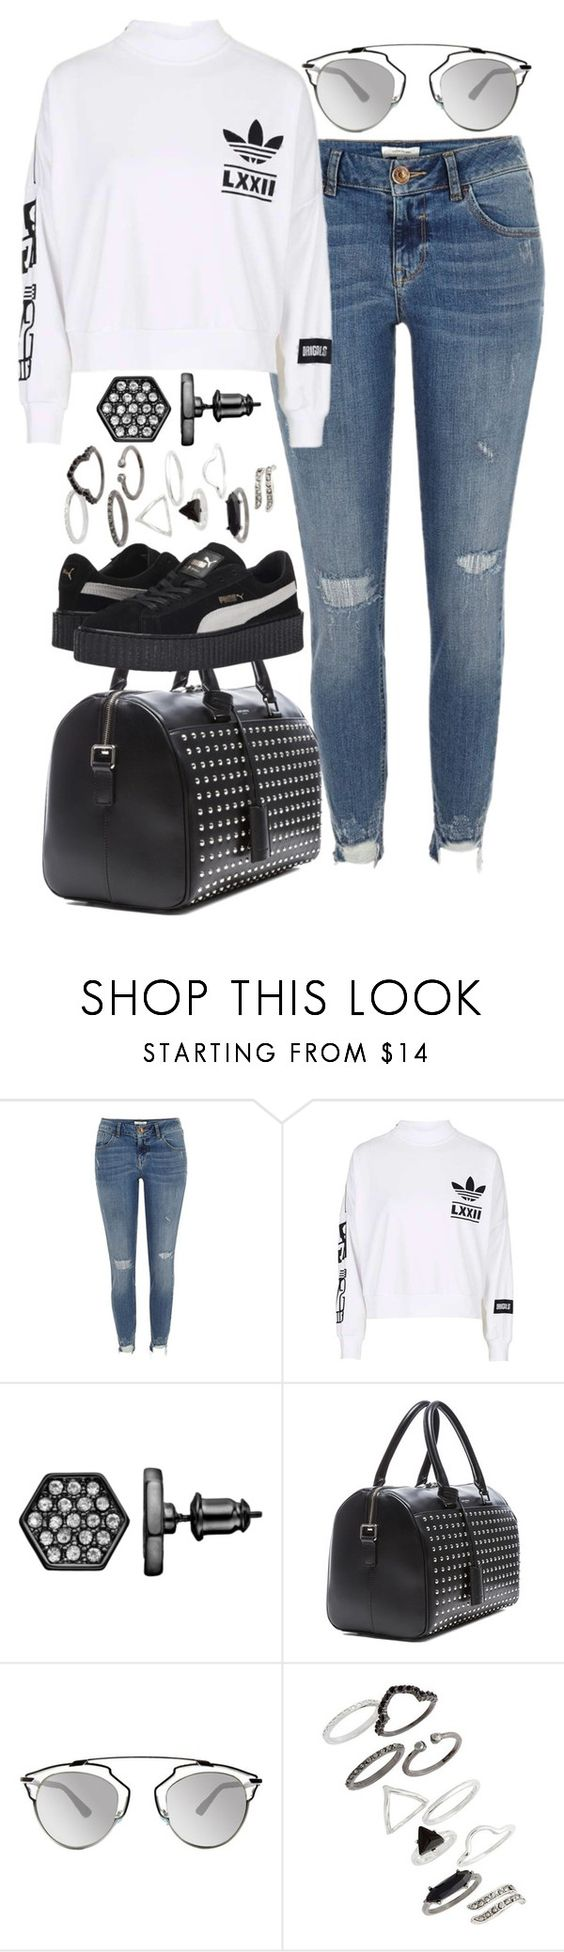 """""""Untitled #1852"""" by sarah-ihab ❤ liked on Polyvore featuring River Island, Simply Vera, Yves Saint Laurent, Christian Dior, Topshop and Puma"""